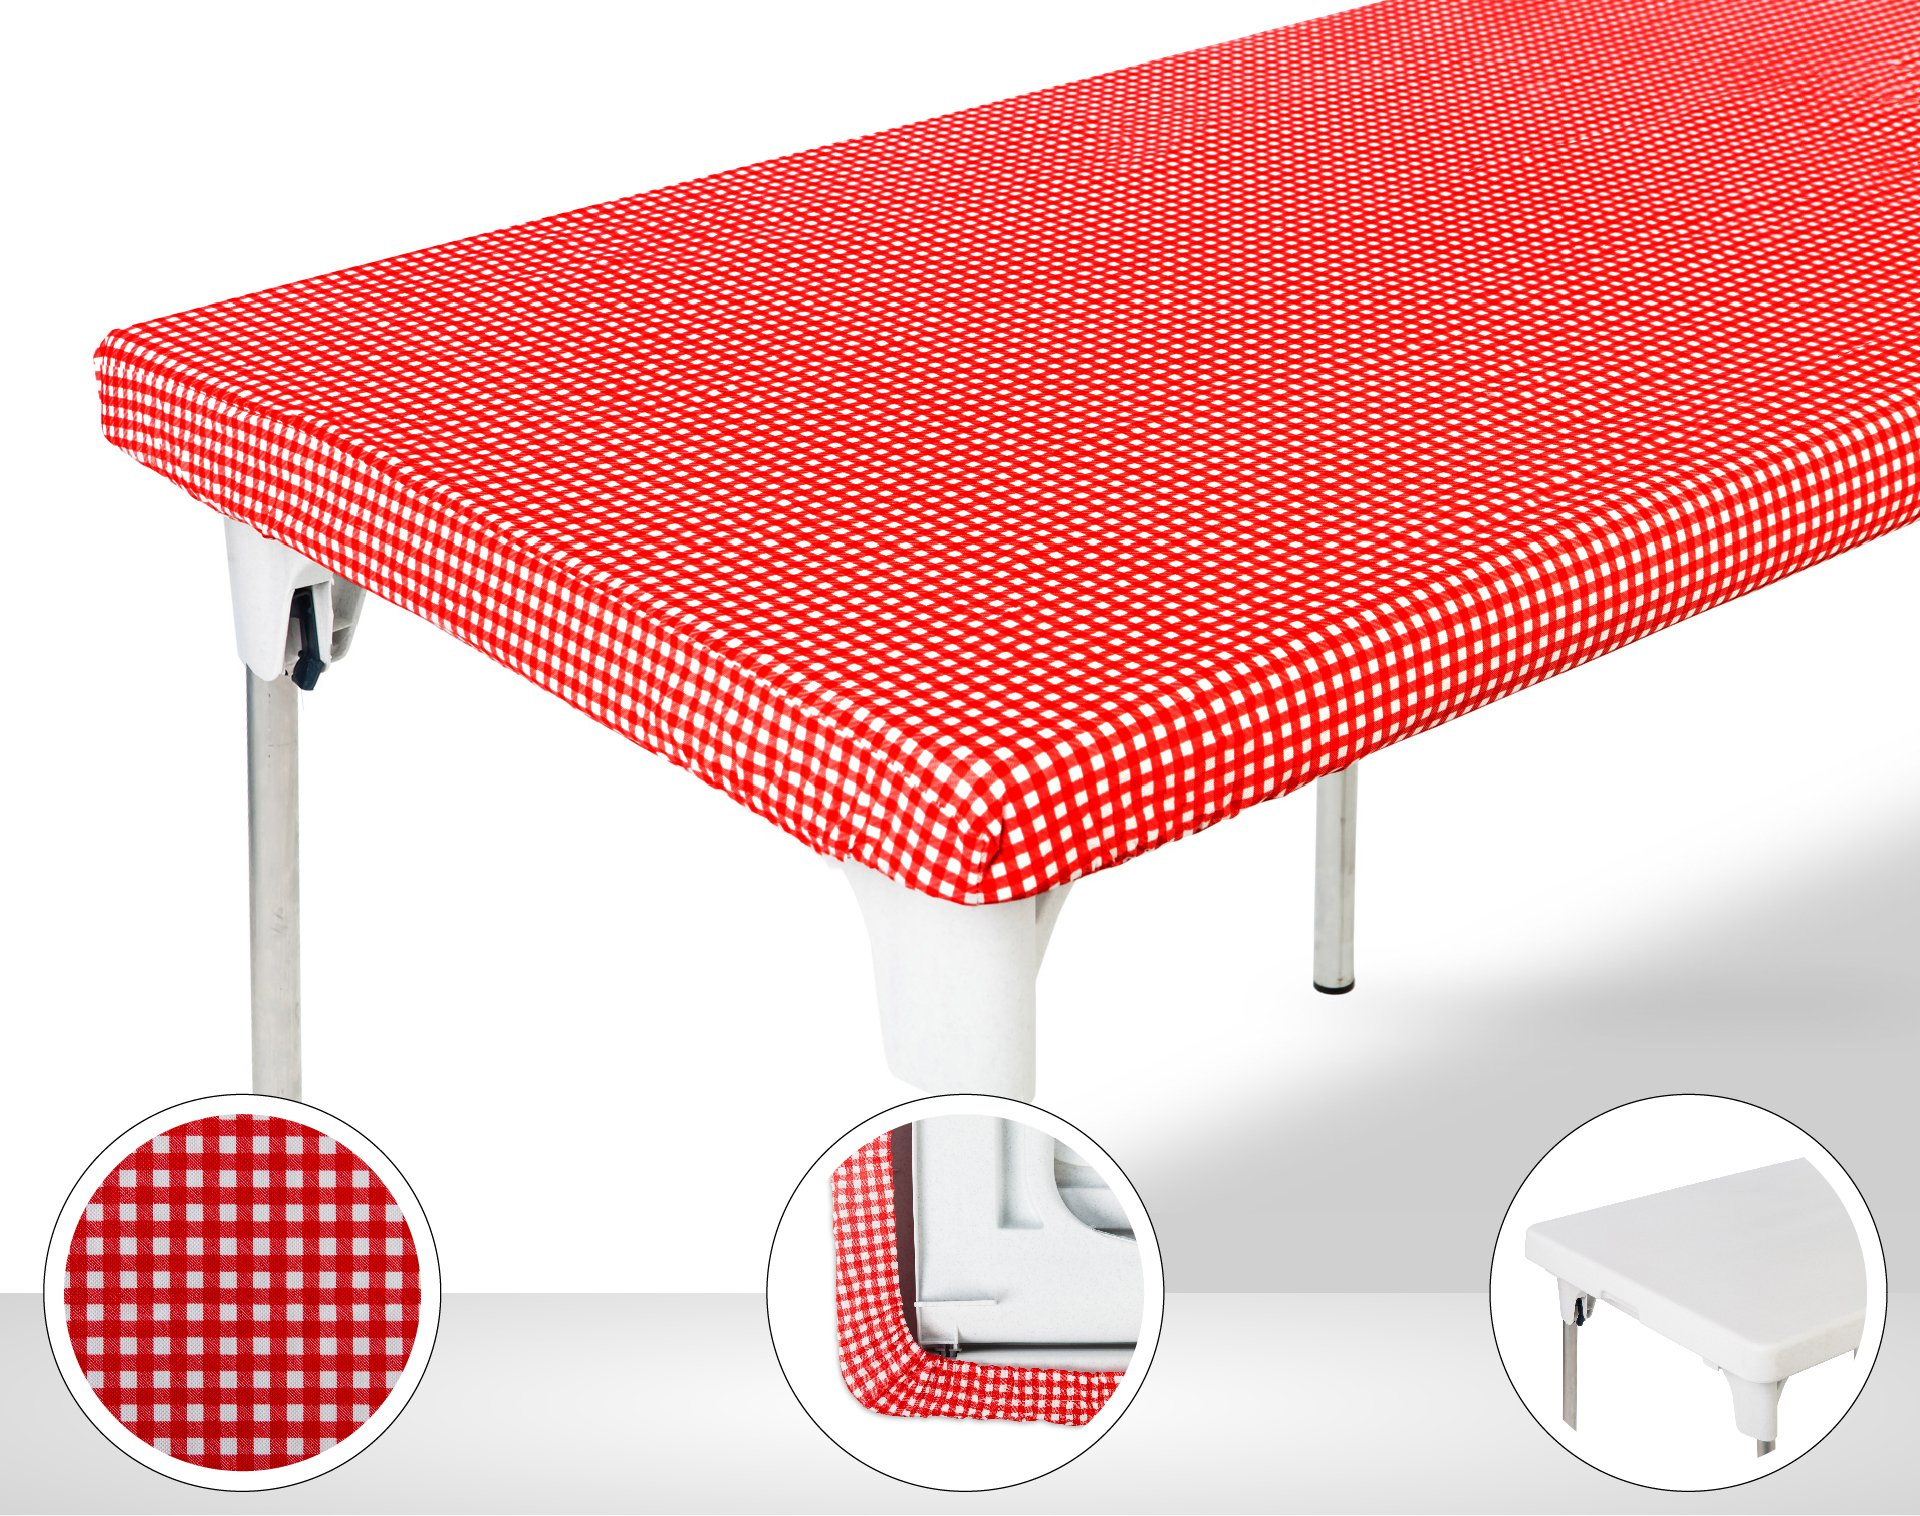 TopTableCloth Table Cover Red & White Checker Elastic on the corner for folding table 6ft (30'' x 72'') Waterproof Elastic Edge Stay-put Fitted Table Cloth for Christmas, Picnics, Parties and Outdoor